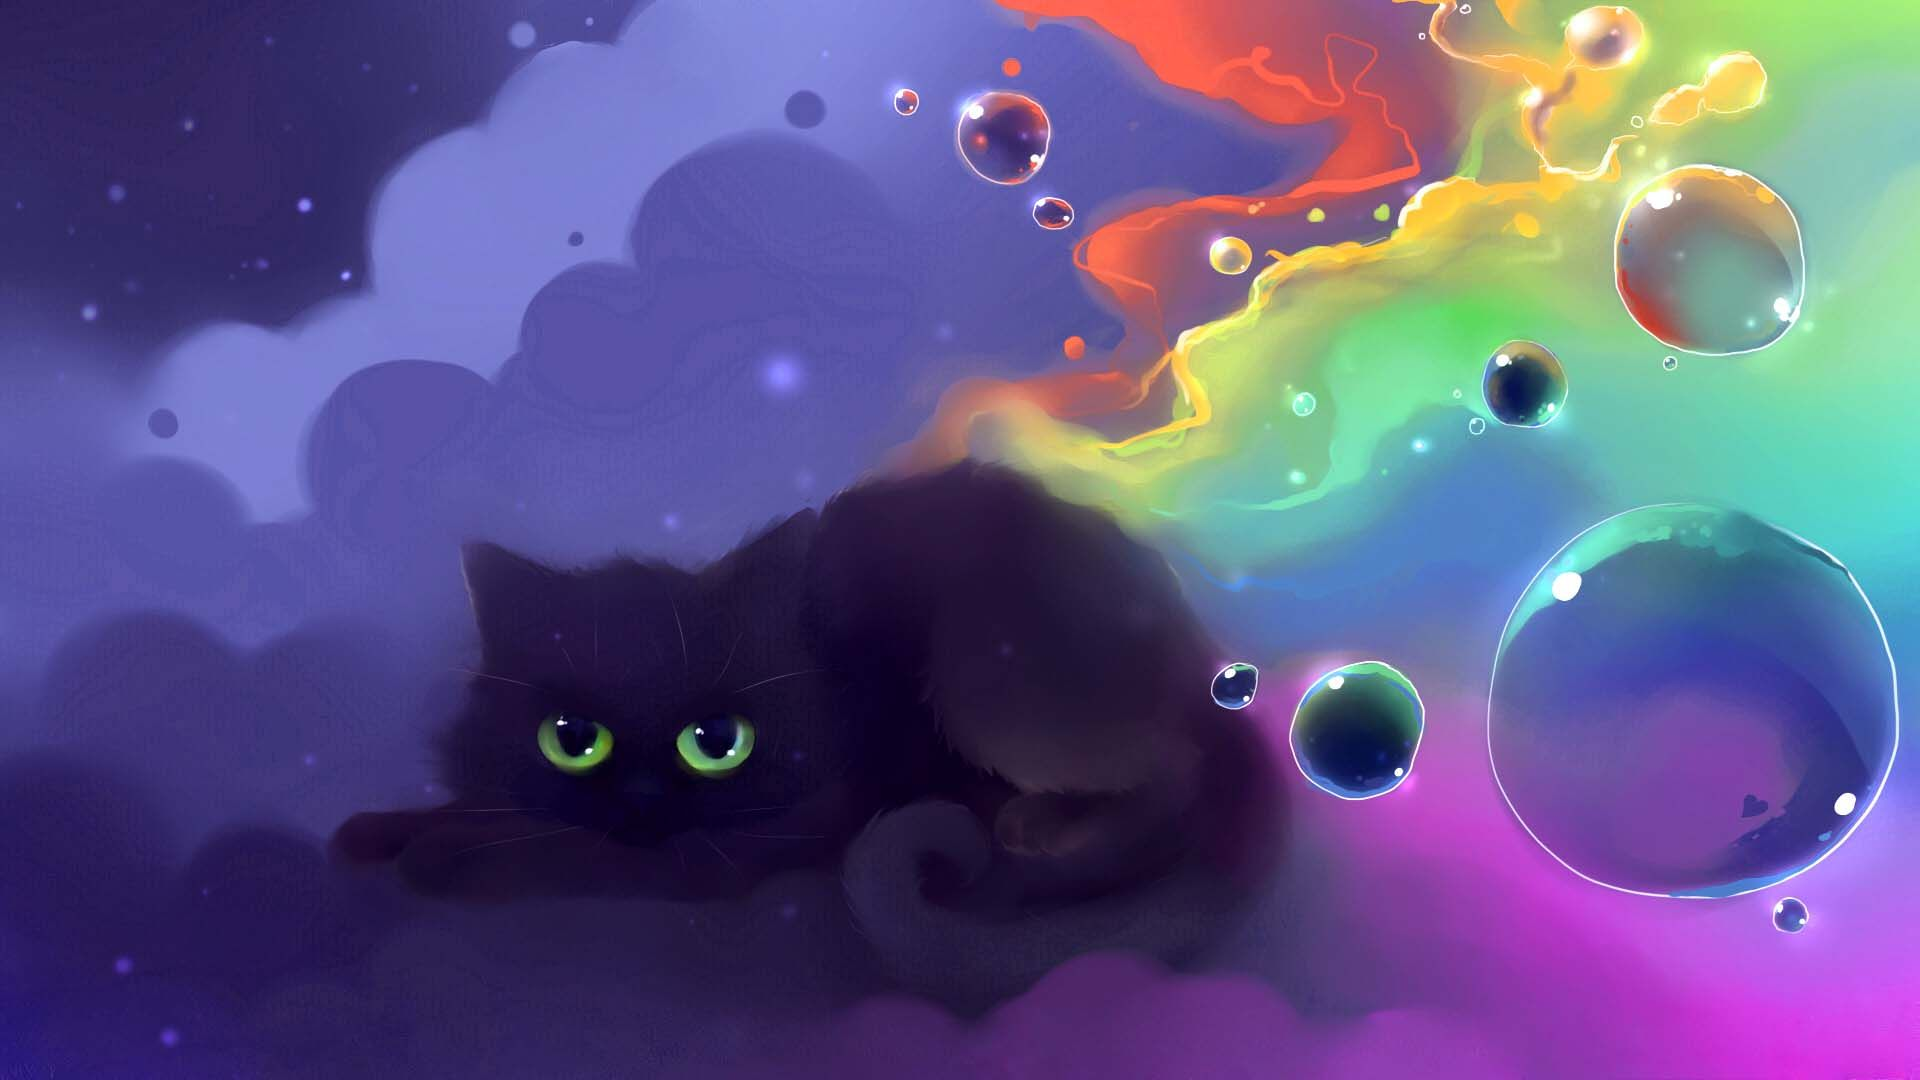 Cats images Kitty Cat HD wallpaper and background photos